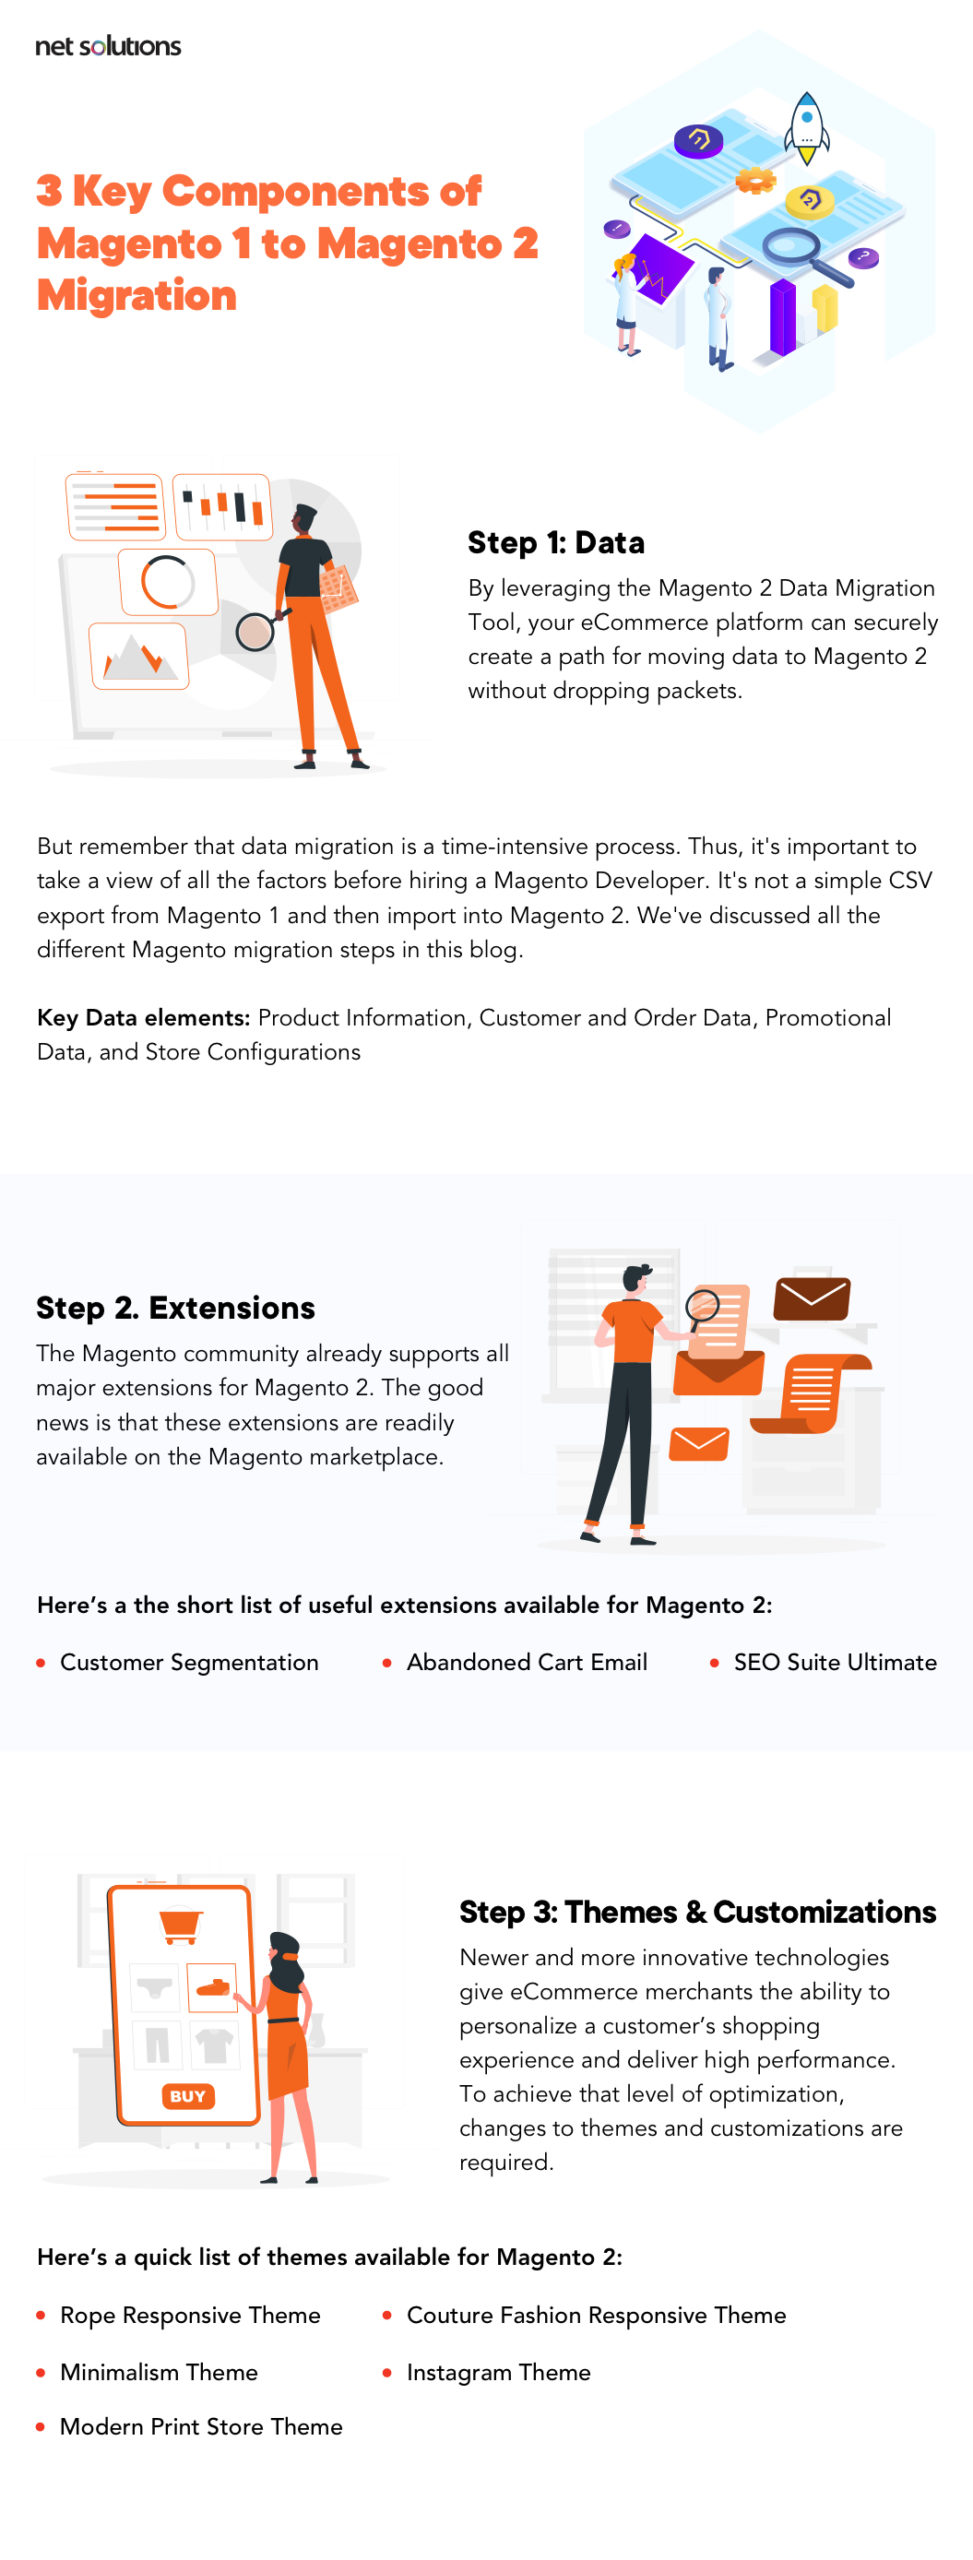 3 key components of magento 1 to magento 2 migration